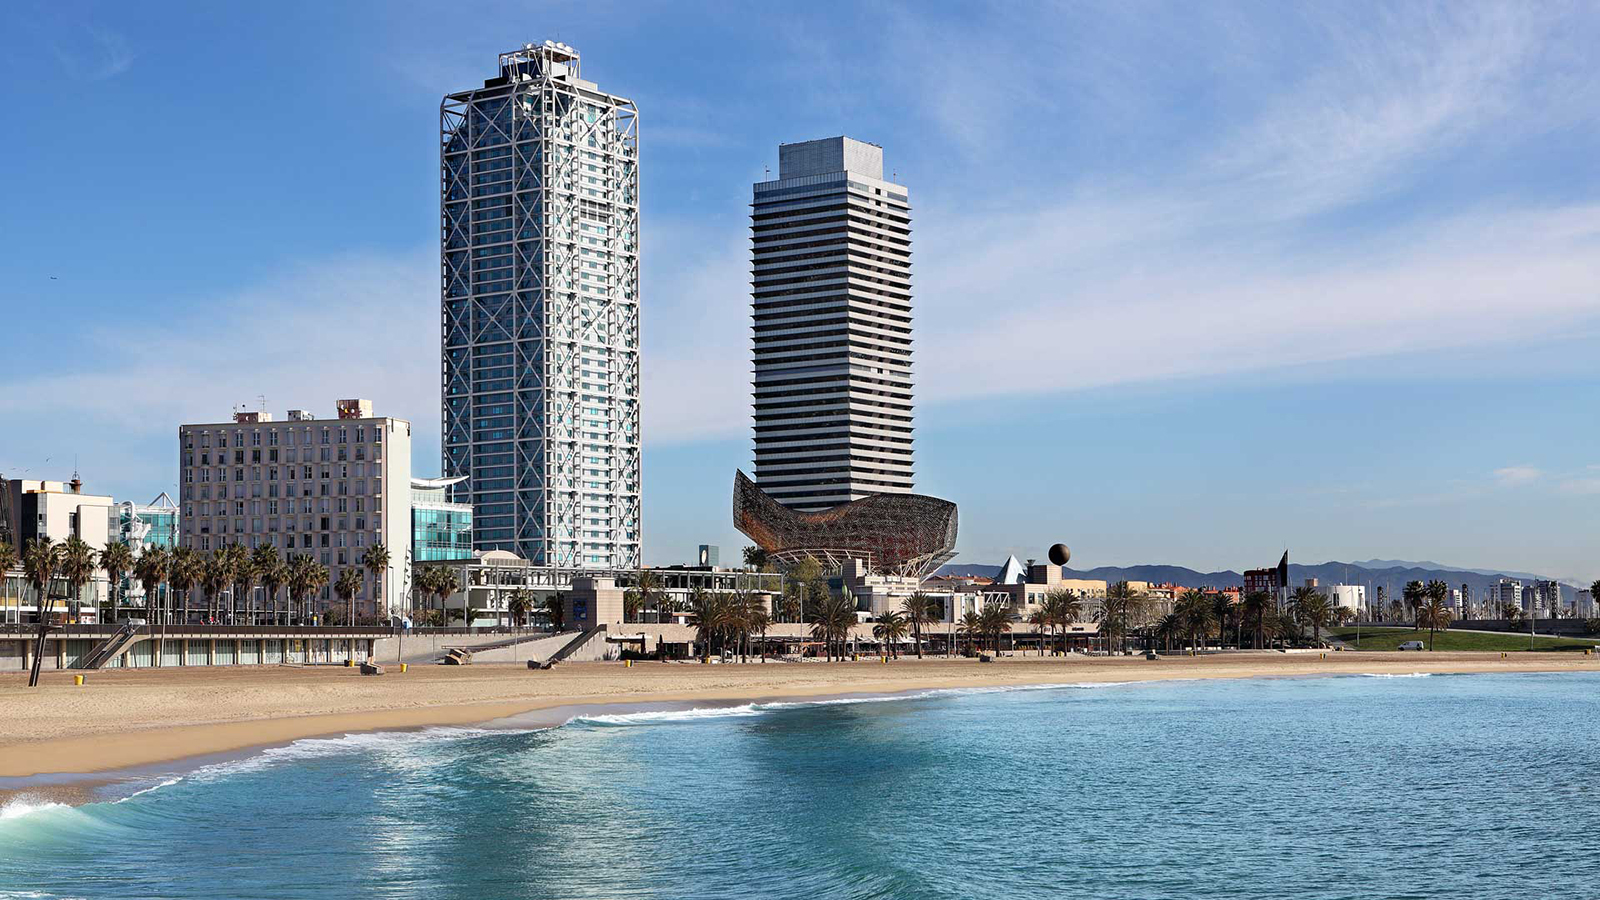 02-plage-barcelone-voyage-barcelone